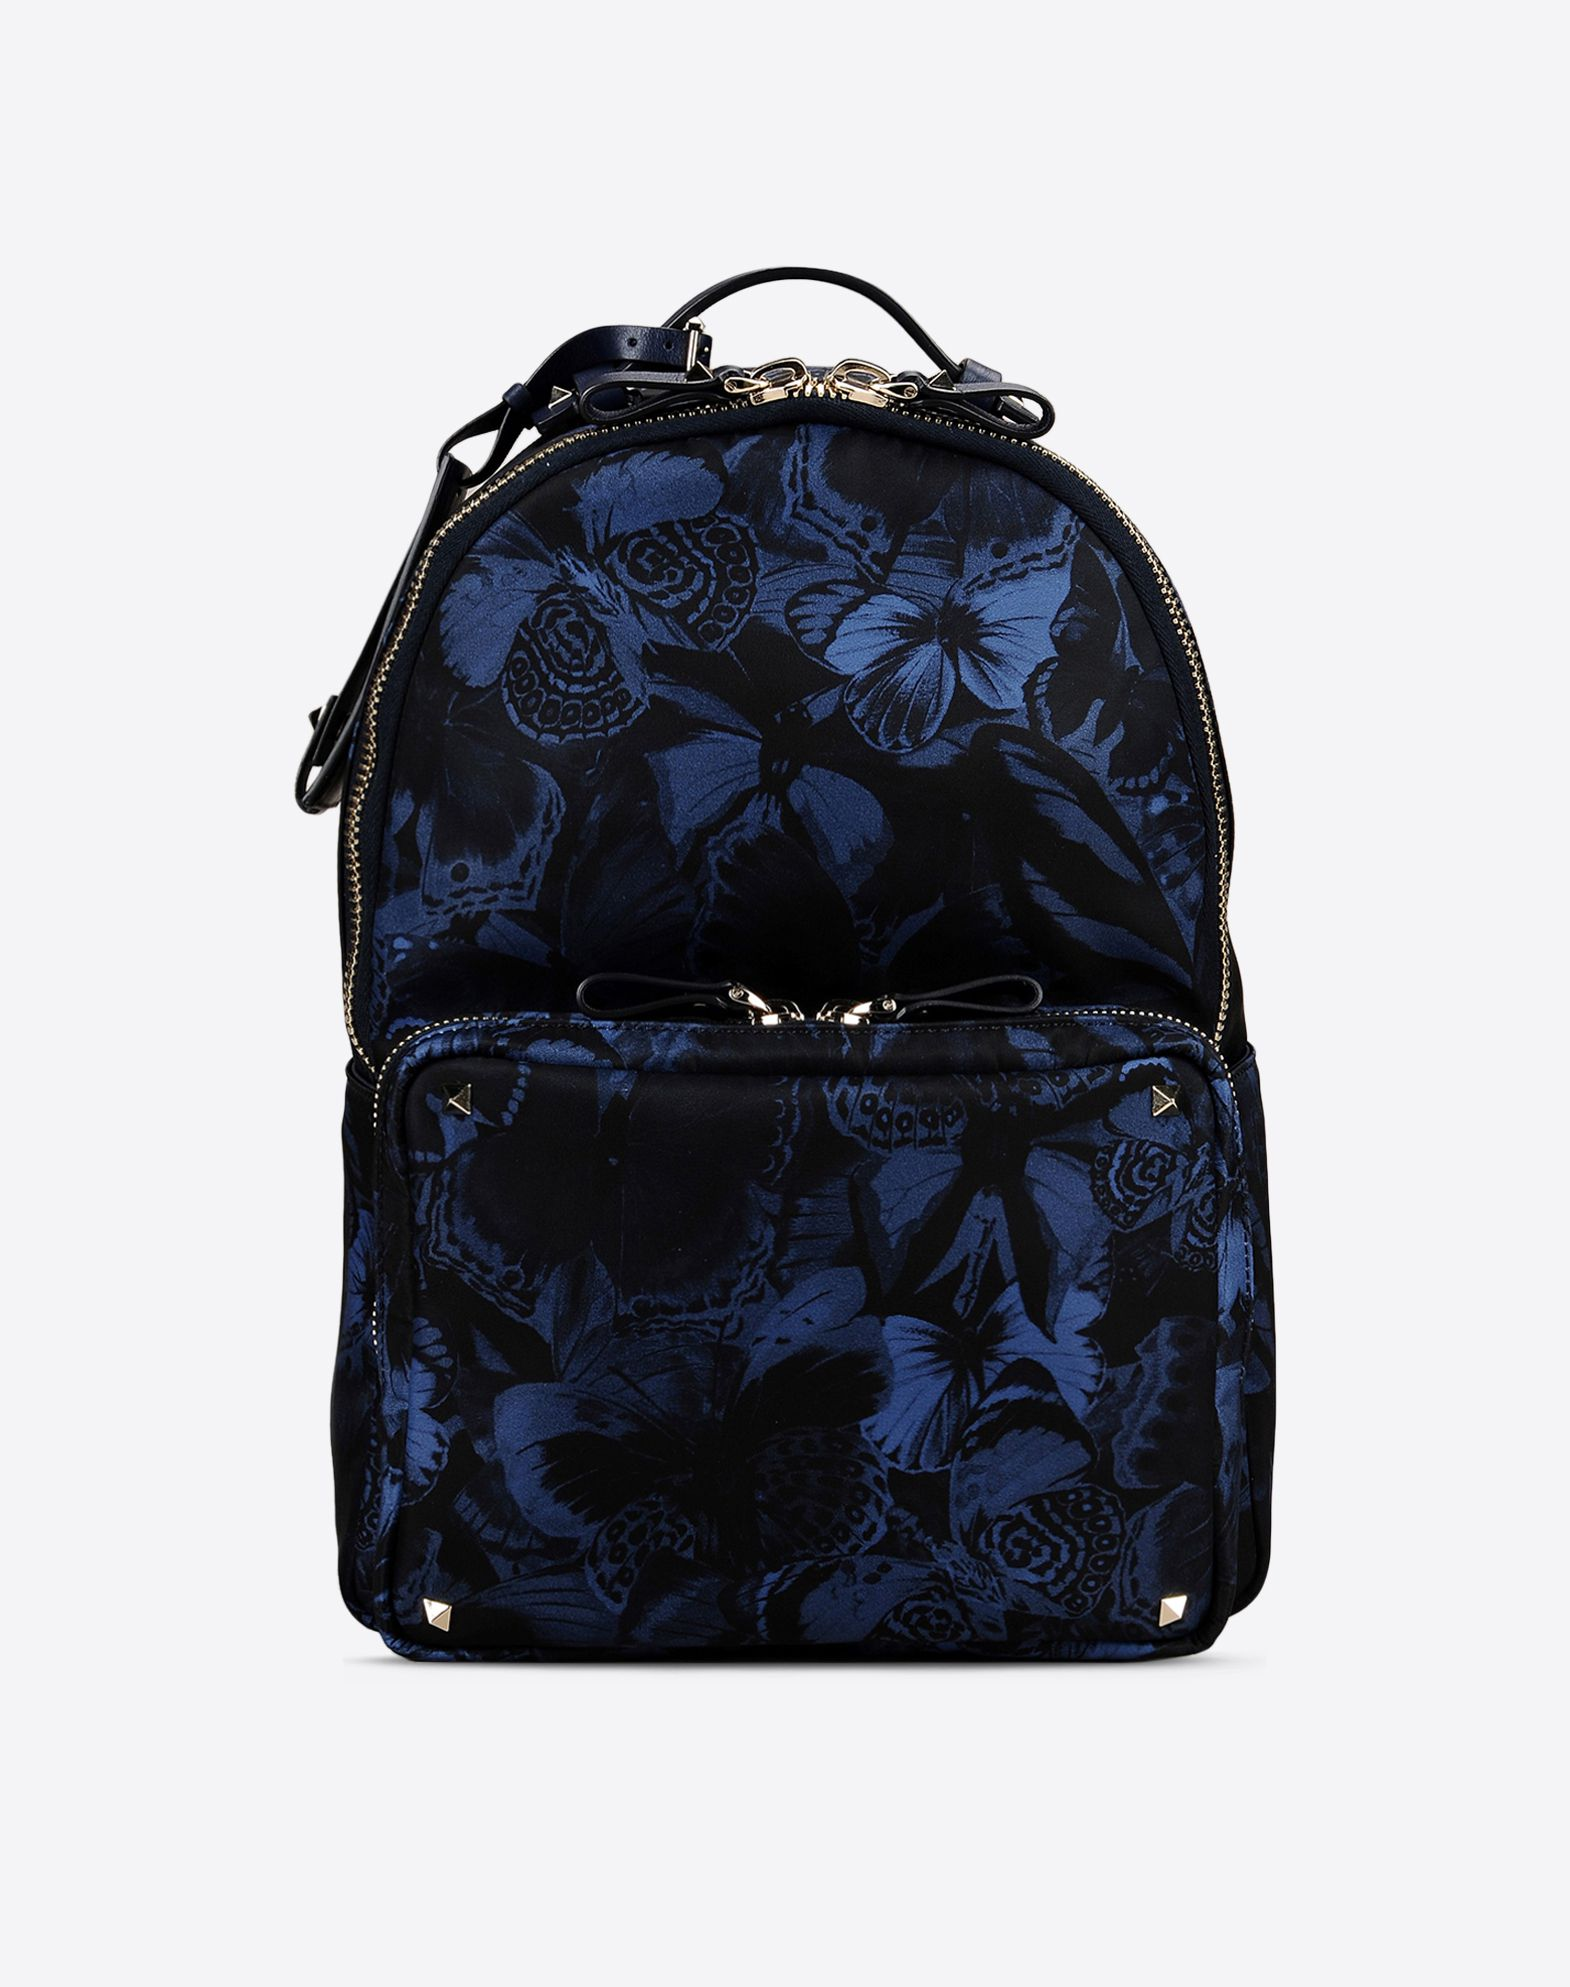 Blue Valentino Garavani New Camo Backpack Valentino Cheap Big Discount Limited Edition Sale Online Buy Cheap New Clearance Release Dates oU4EMJat